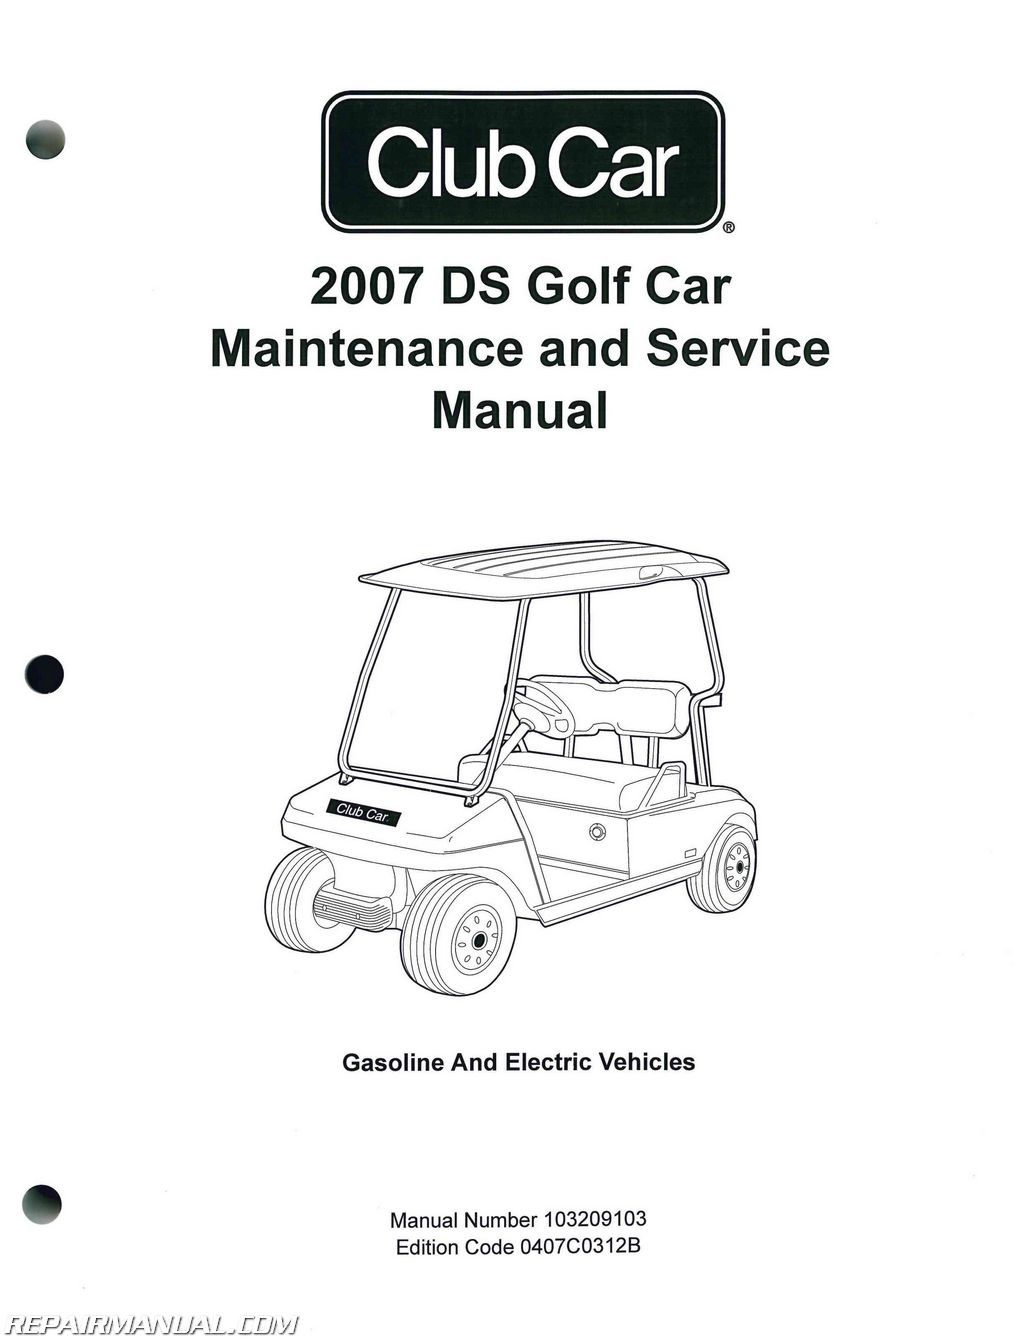 tractor wiring harness for sale with Official 2007 Club Car Ds Golf Car Gas Electric Service Manual 103209103 on Car Hood Harness additionally S17568 additionally Wiring Diagram For John Deere Backhoe in addition Snapper Riding Mower Wiring Diagram as well 8n Ford Wiring Diagram.